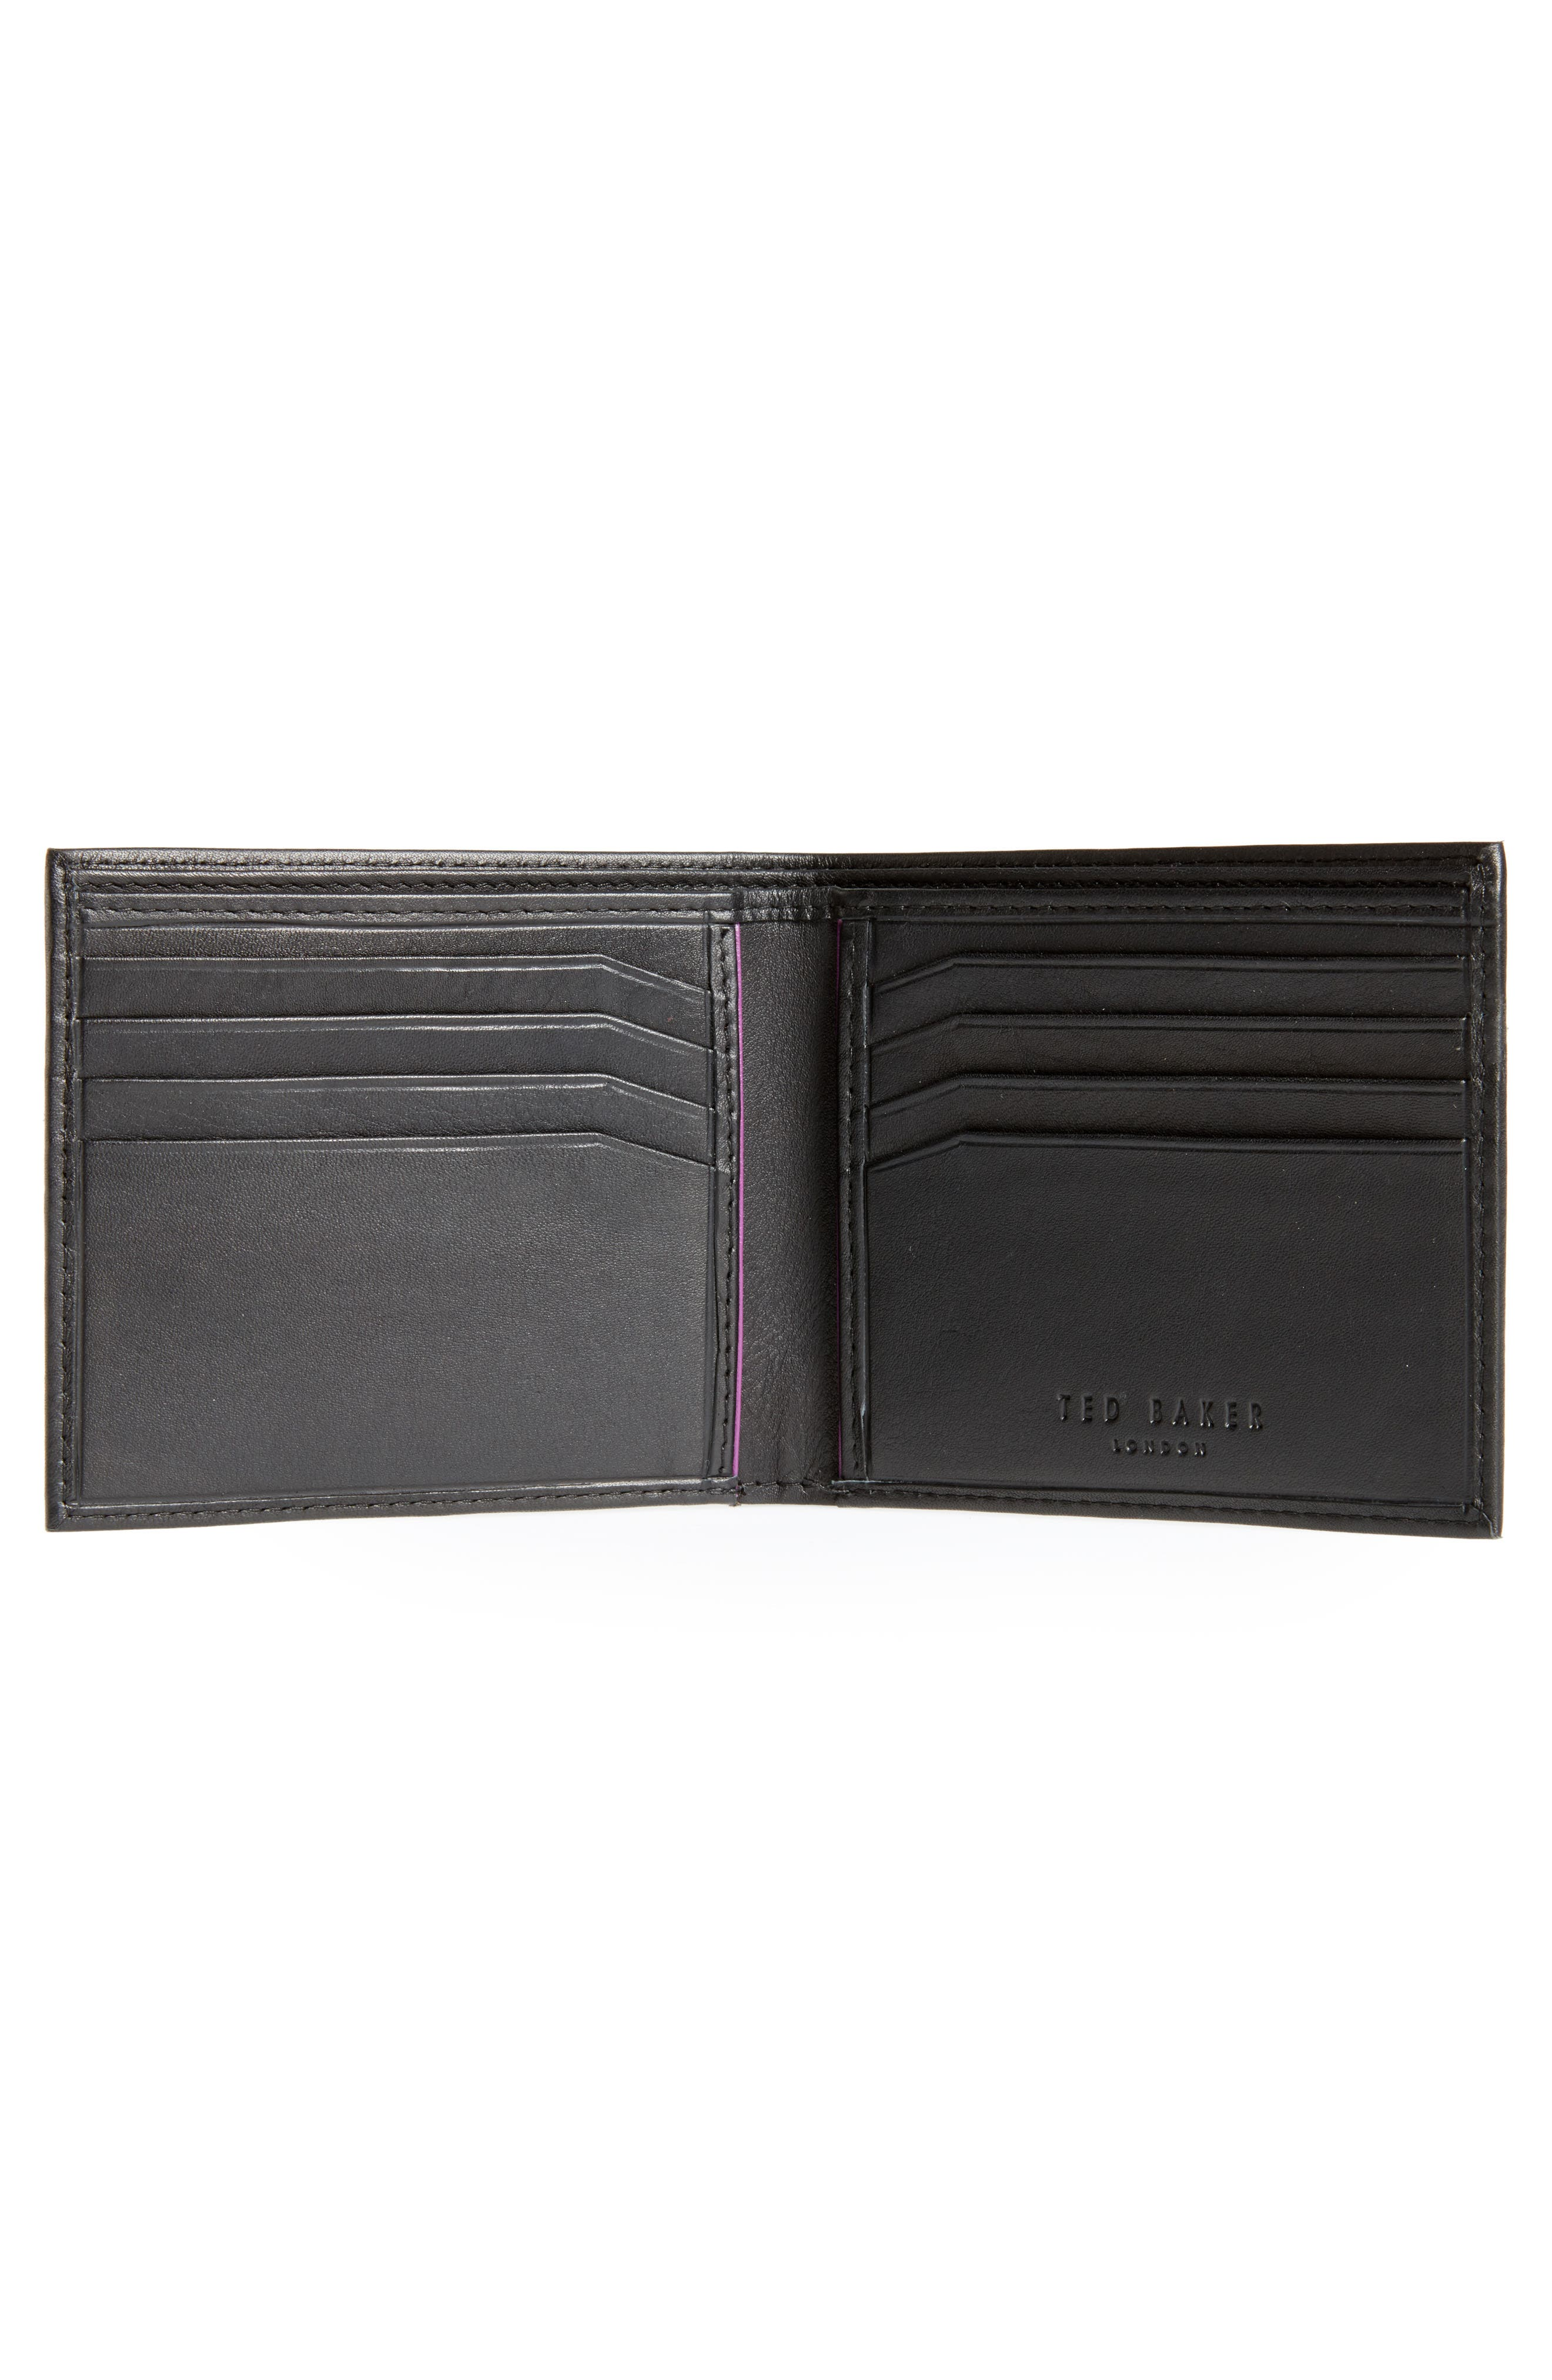 Figgy Inset Spine Leather Wallet,                             Alternate thumbnail 2, color,                             001